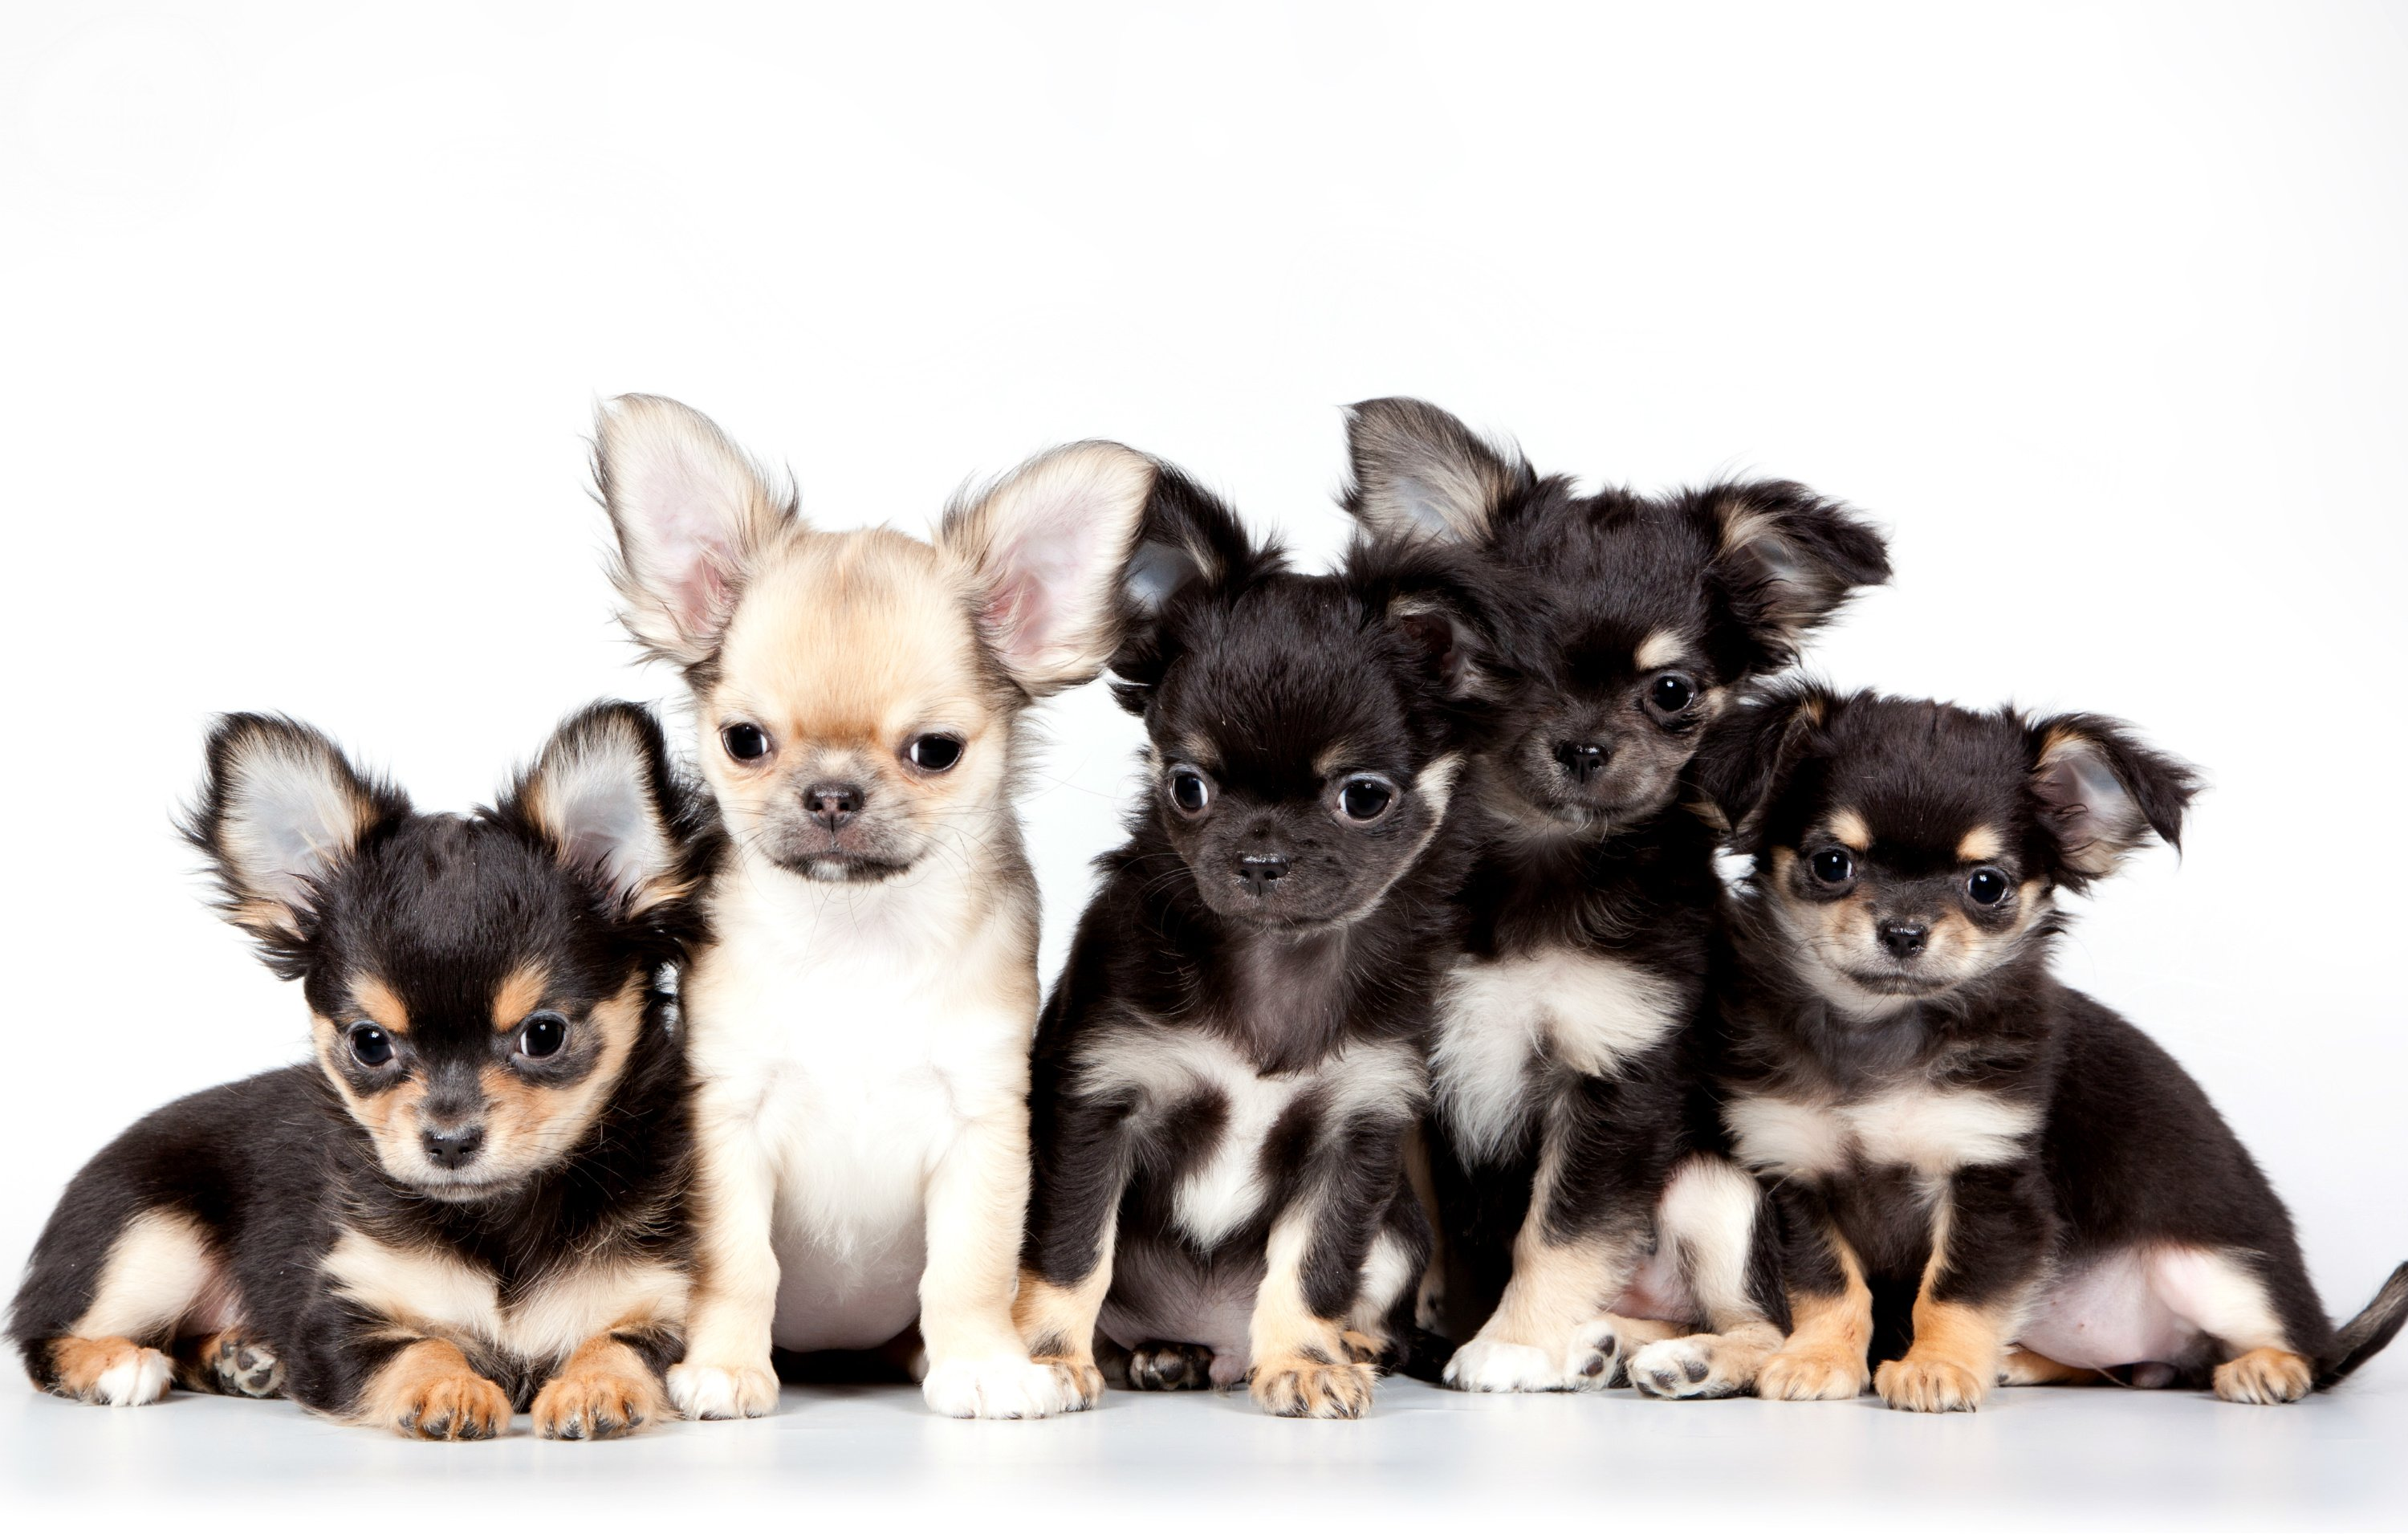 Meaningful Chihuahua Wallpaper, 1122926 by Latisha Creek